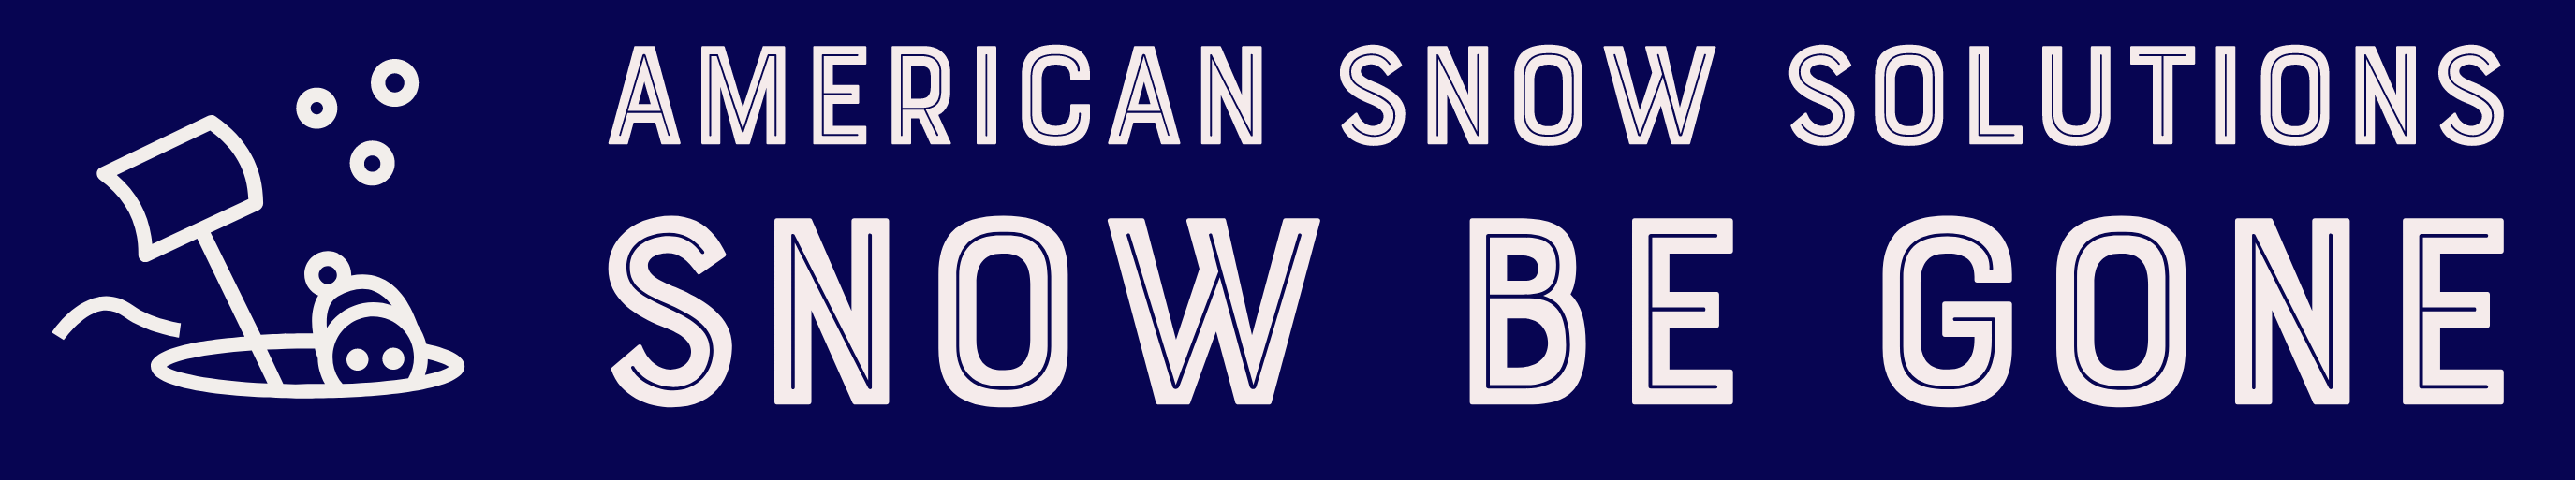 American Snow Solutions